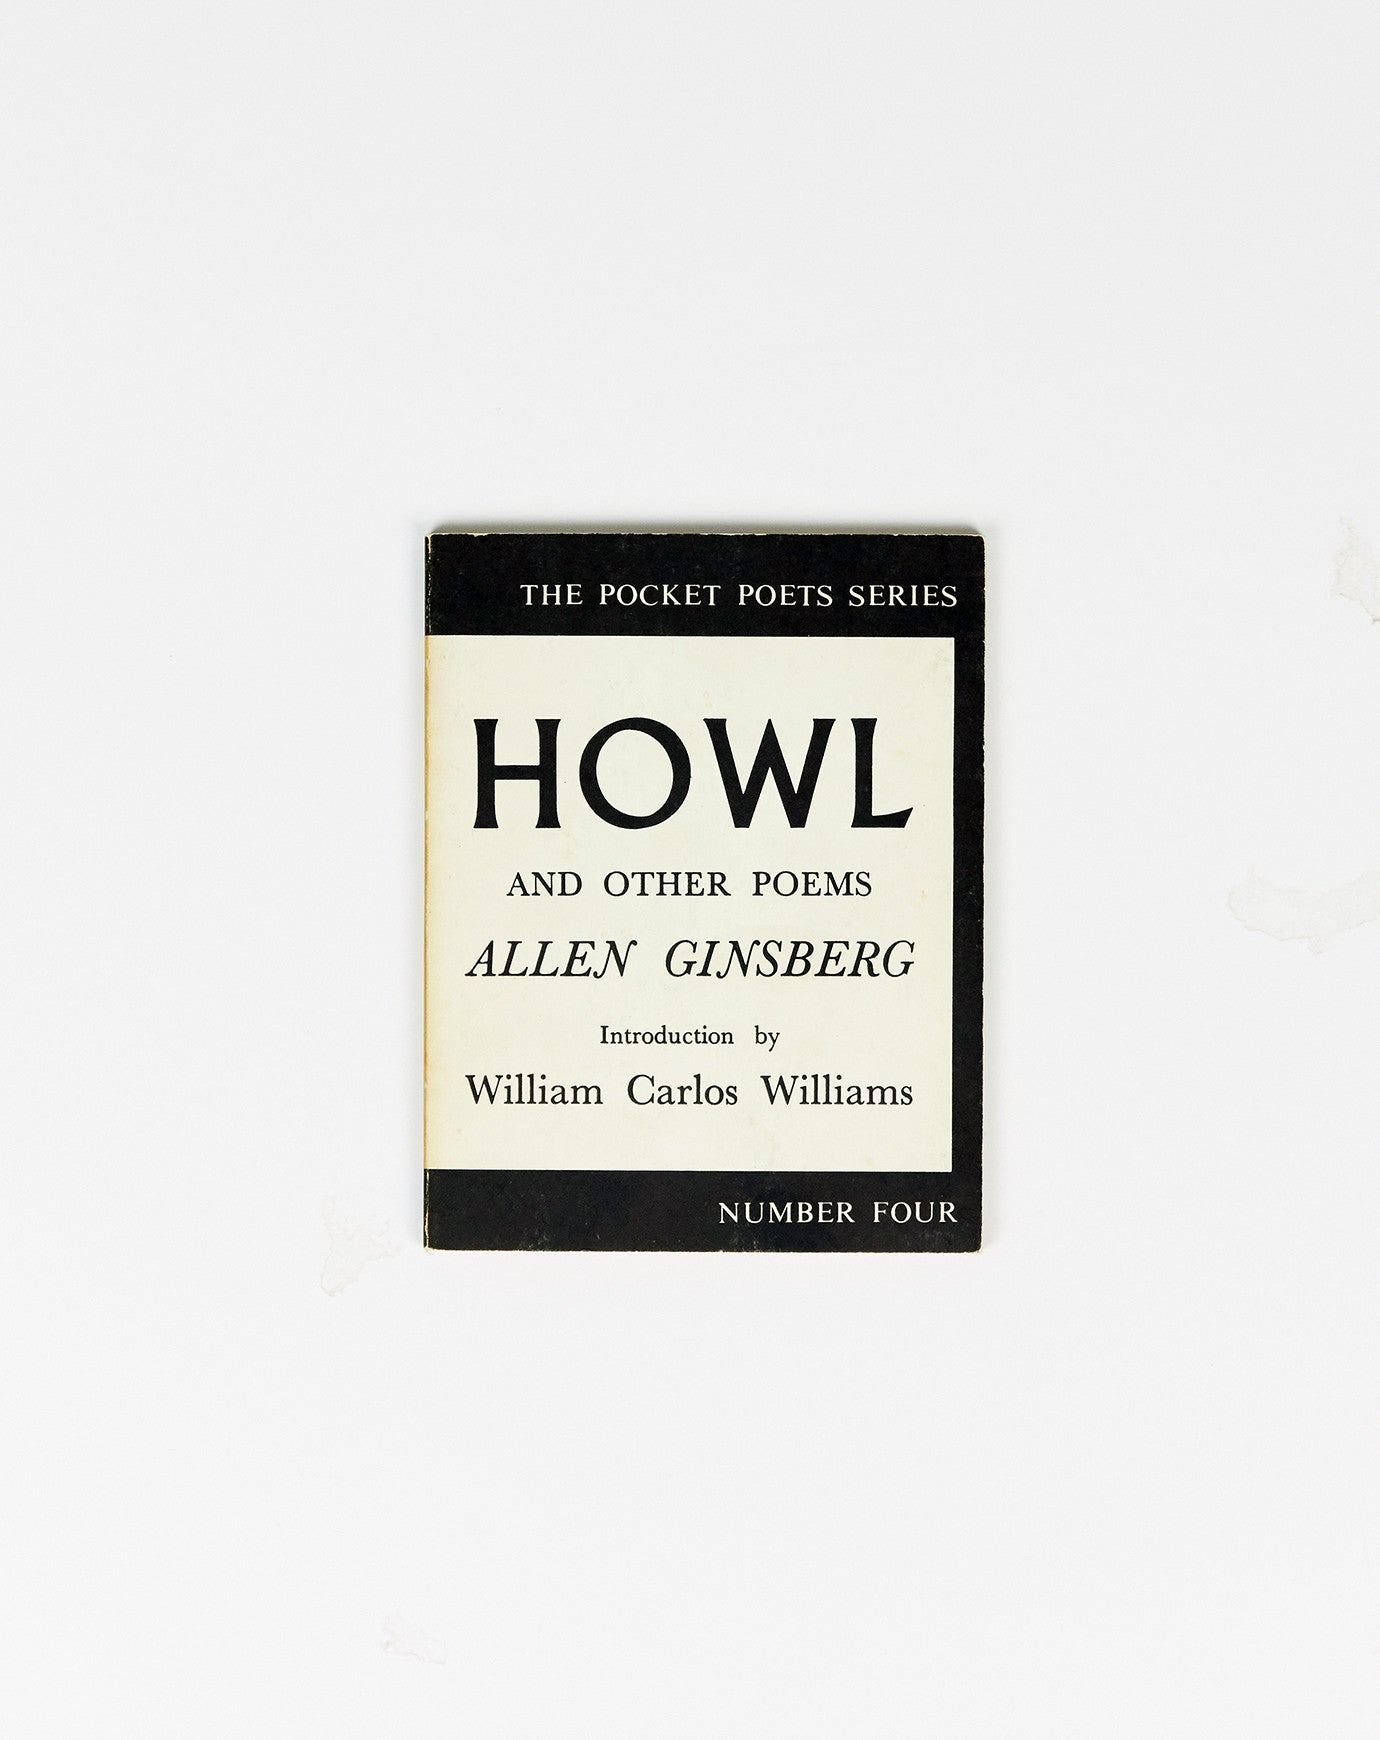 Howl and Other Poems by Allen Ginsburg